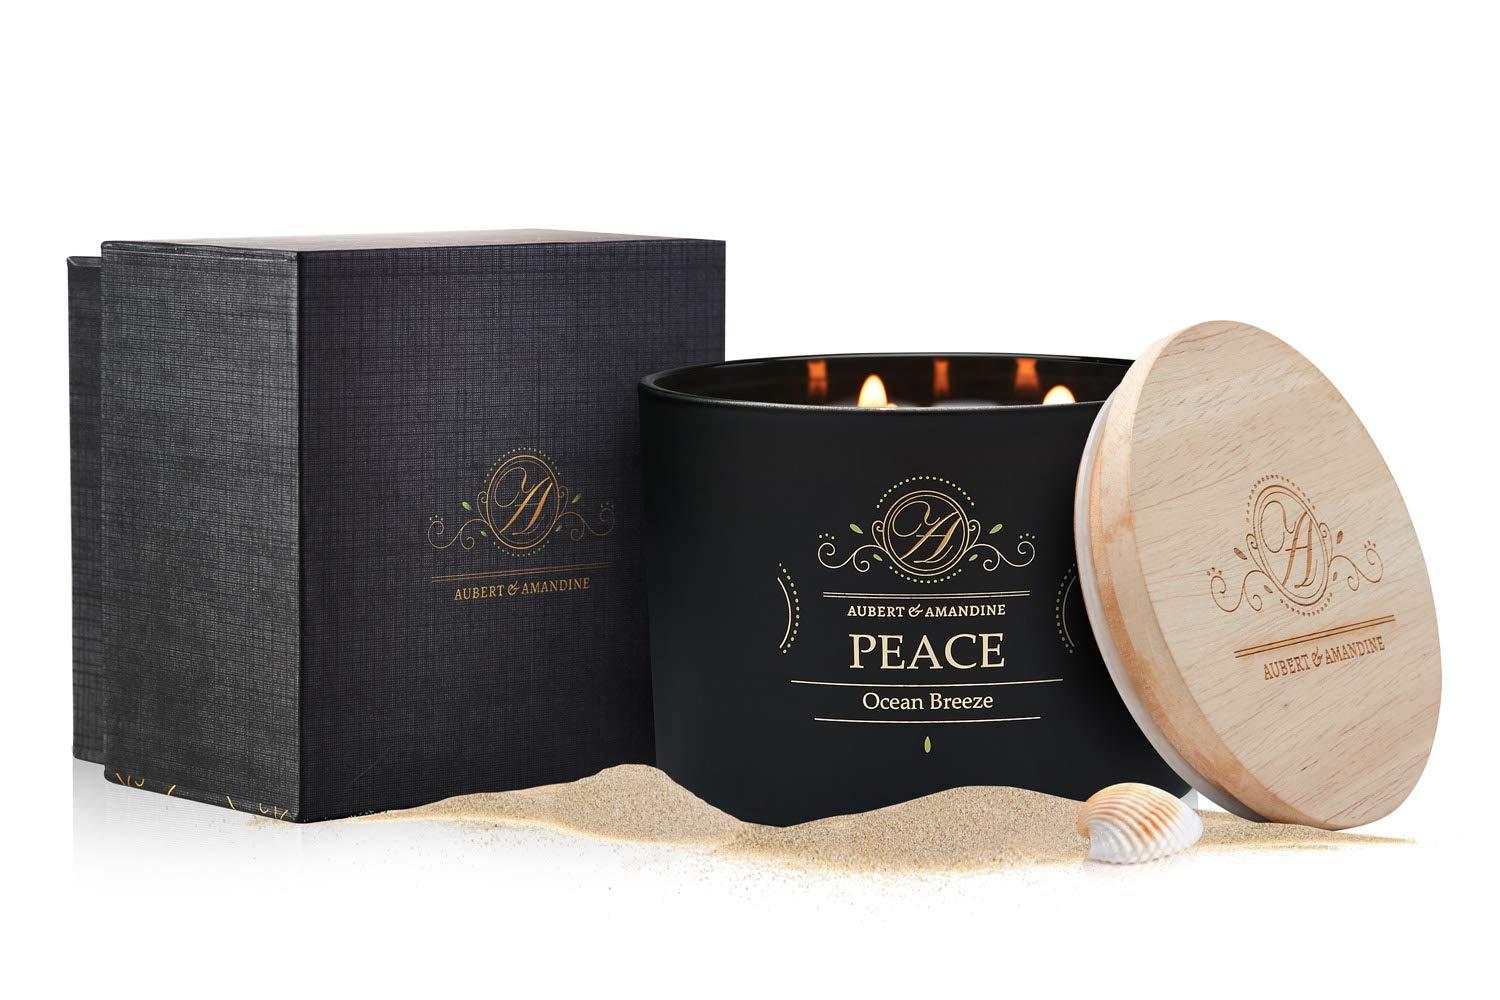 Aubert & Amandine Peace Cedar Bergamot Luxury Scented 3 Wick Soy Candle for Stress Relief & Relaxation High Intensity Aromatherapy